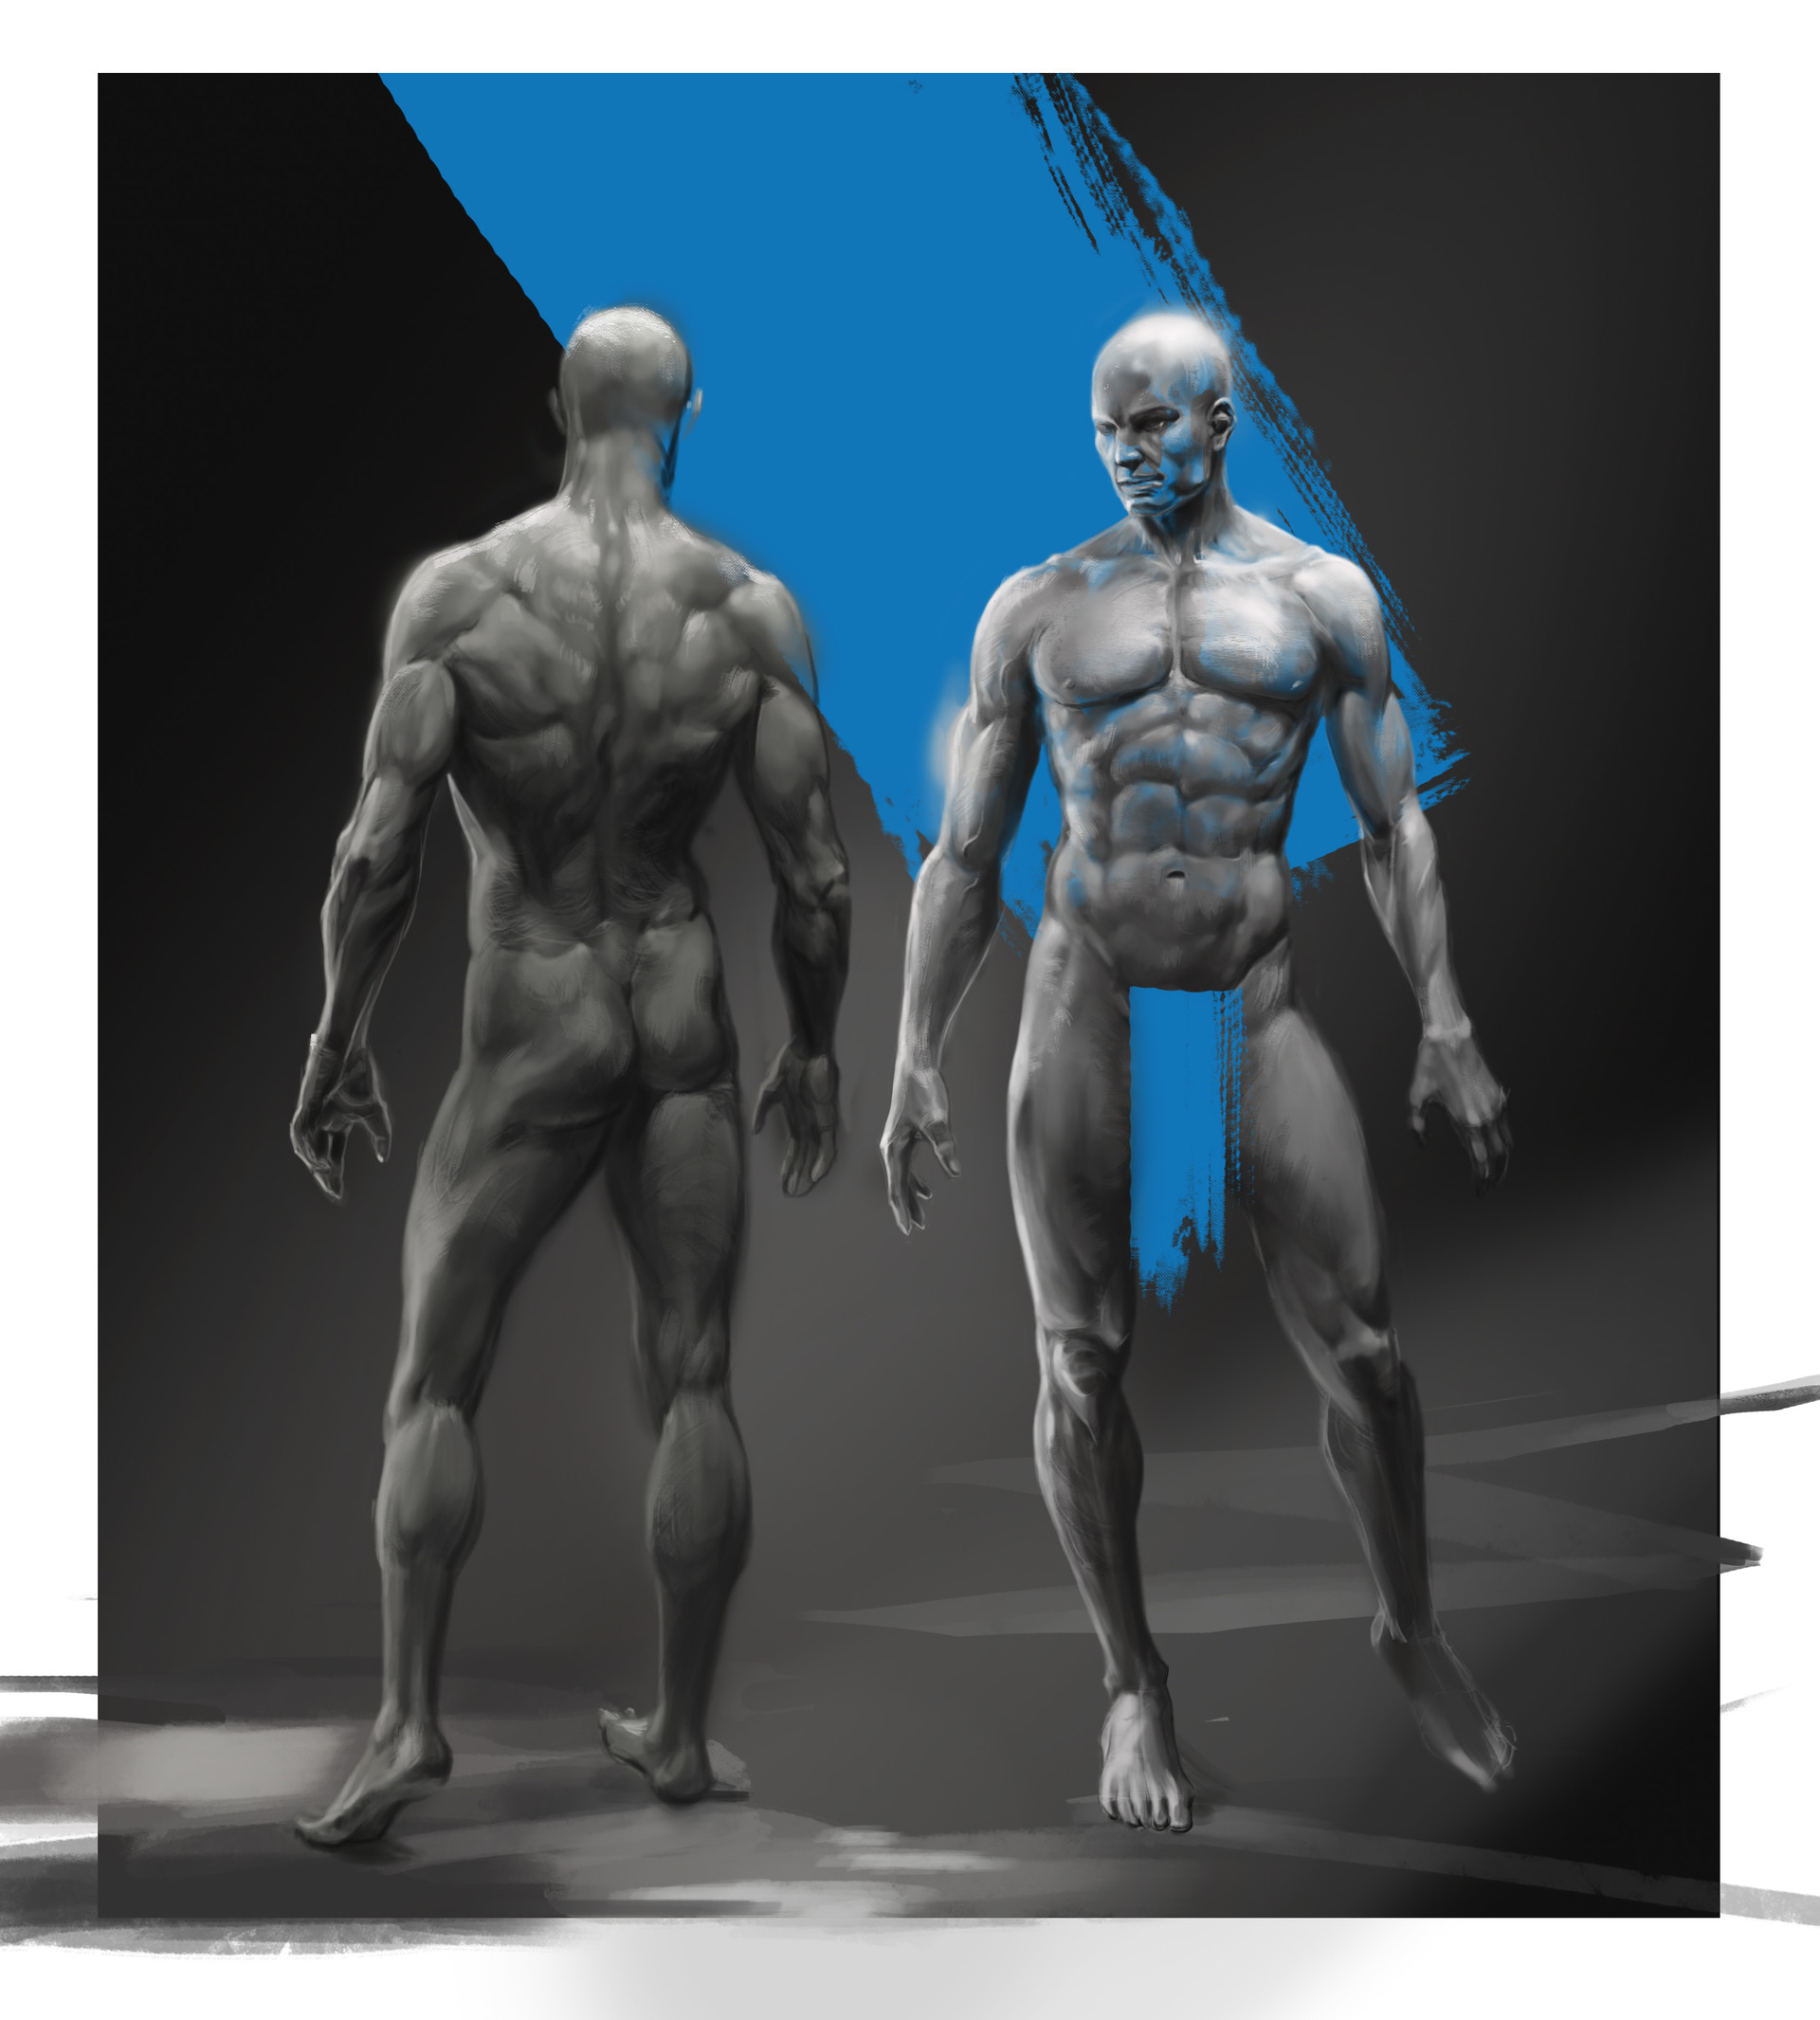 Male anatomy study based on jang seonghwan 3D artwork